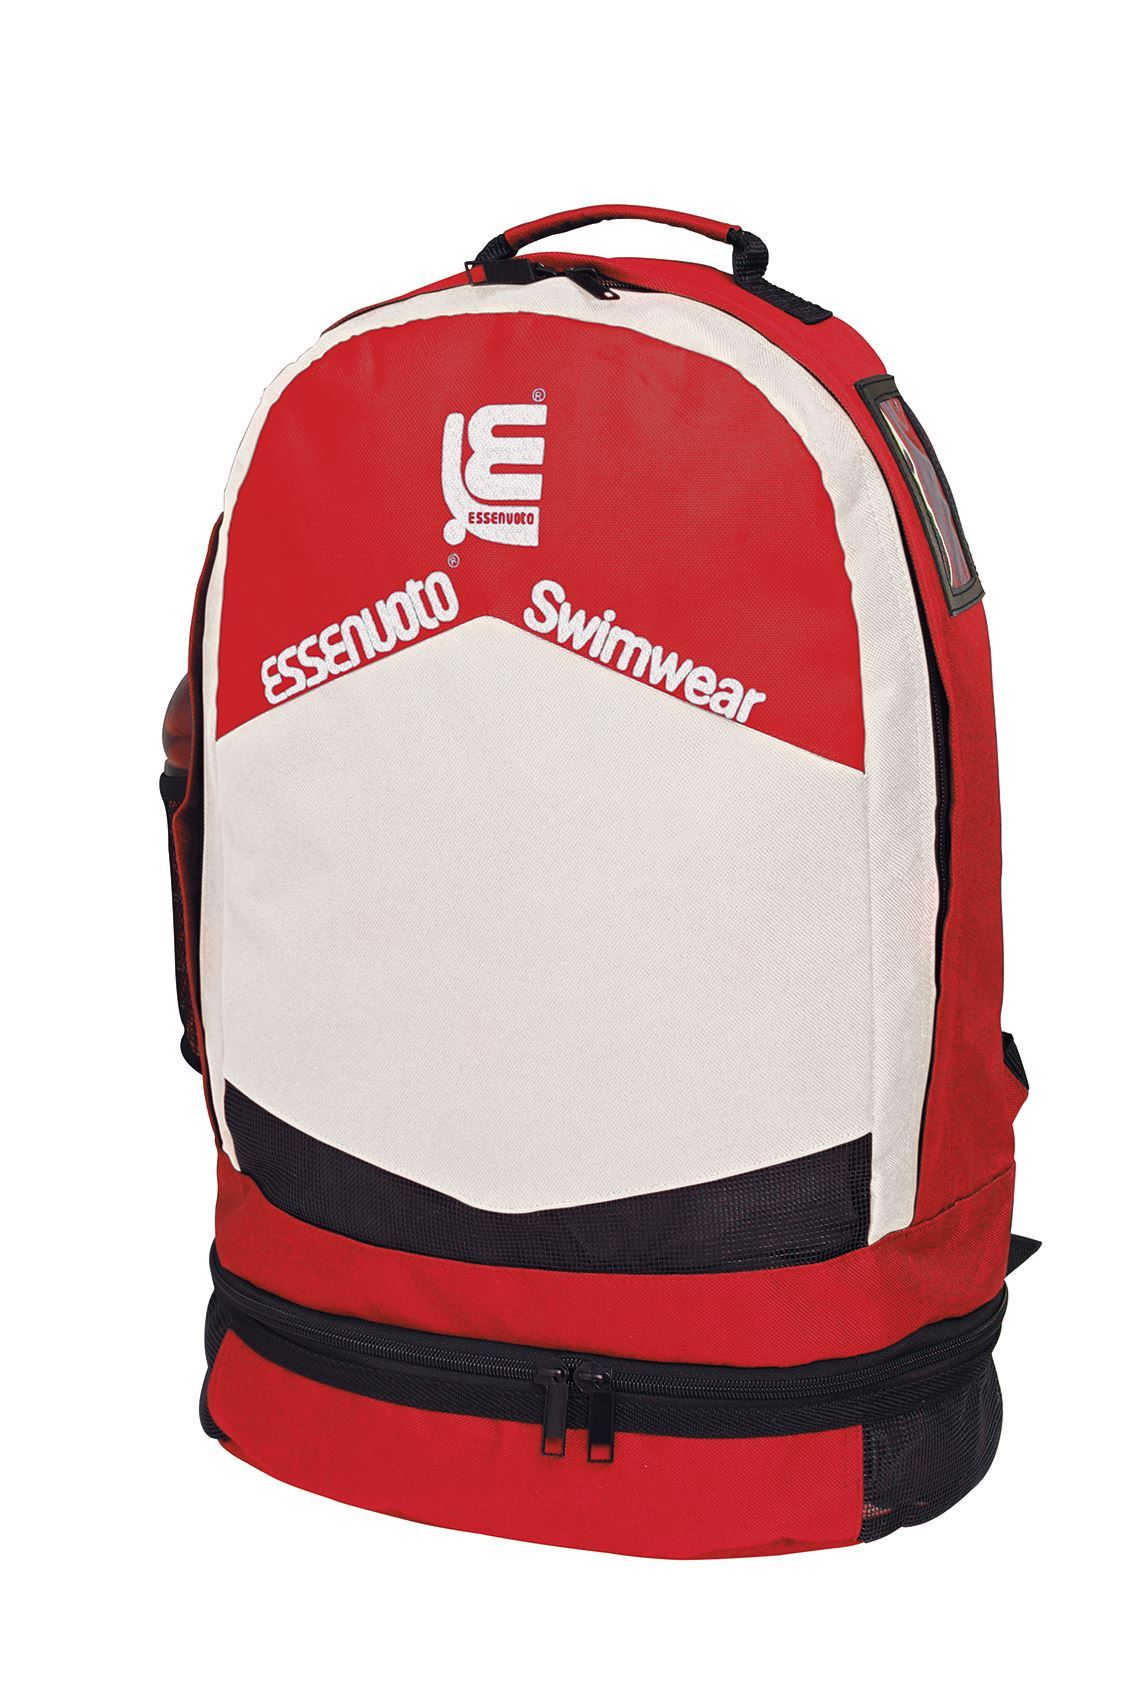 200002 - BACK PACK RED WHITE WITH SOFT SHOULDER STRAP